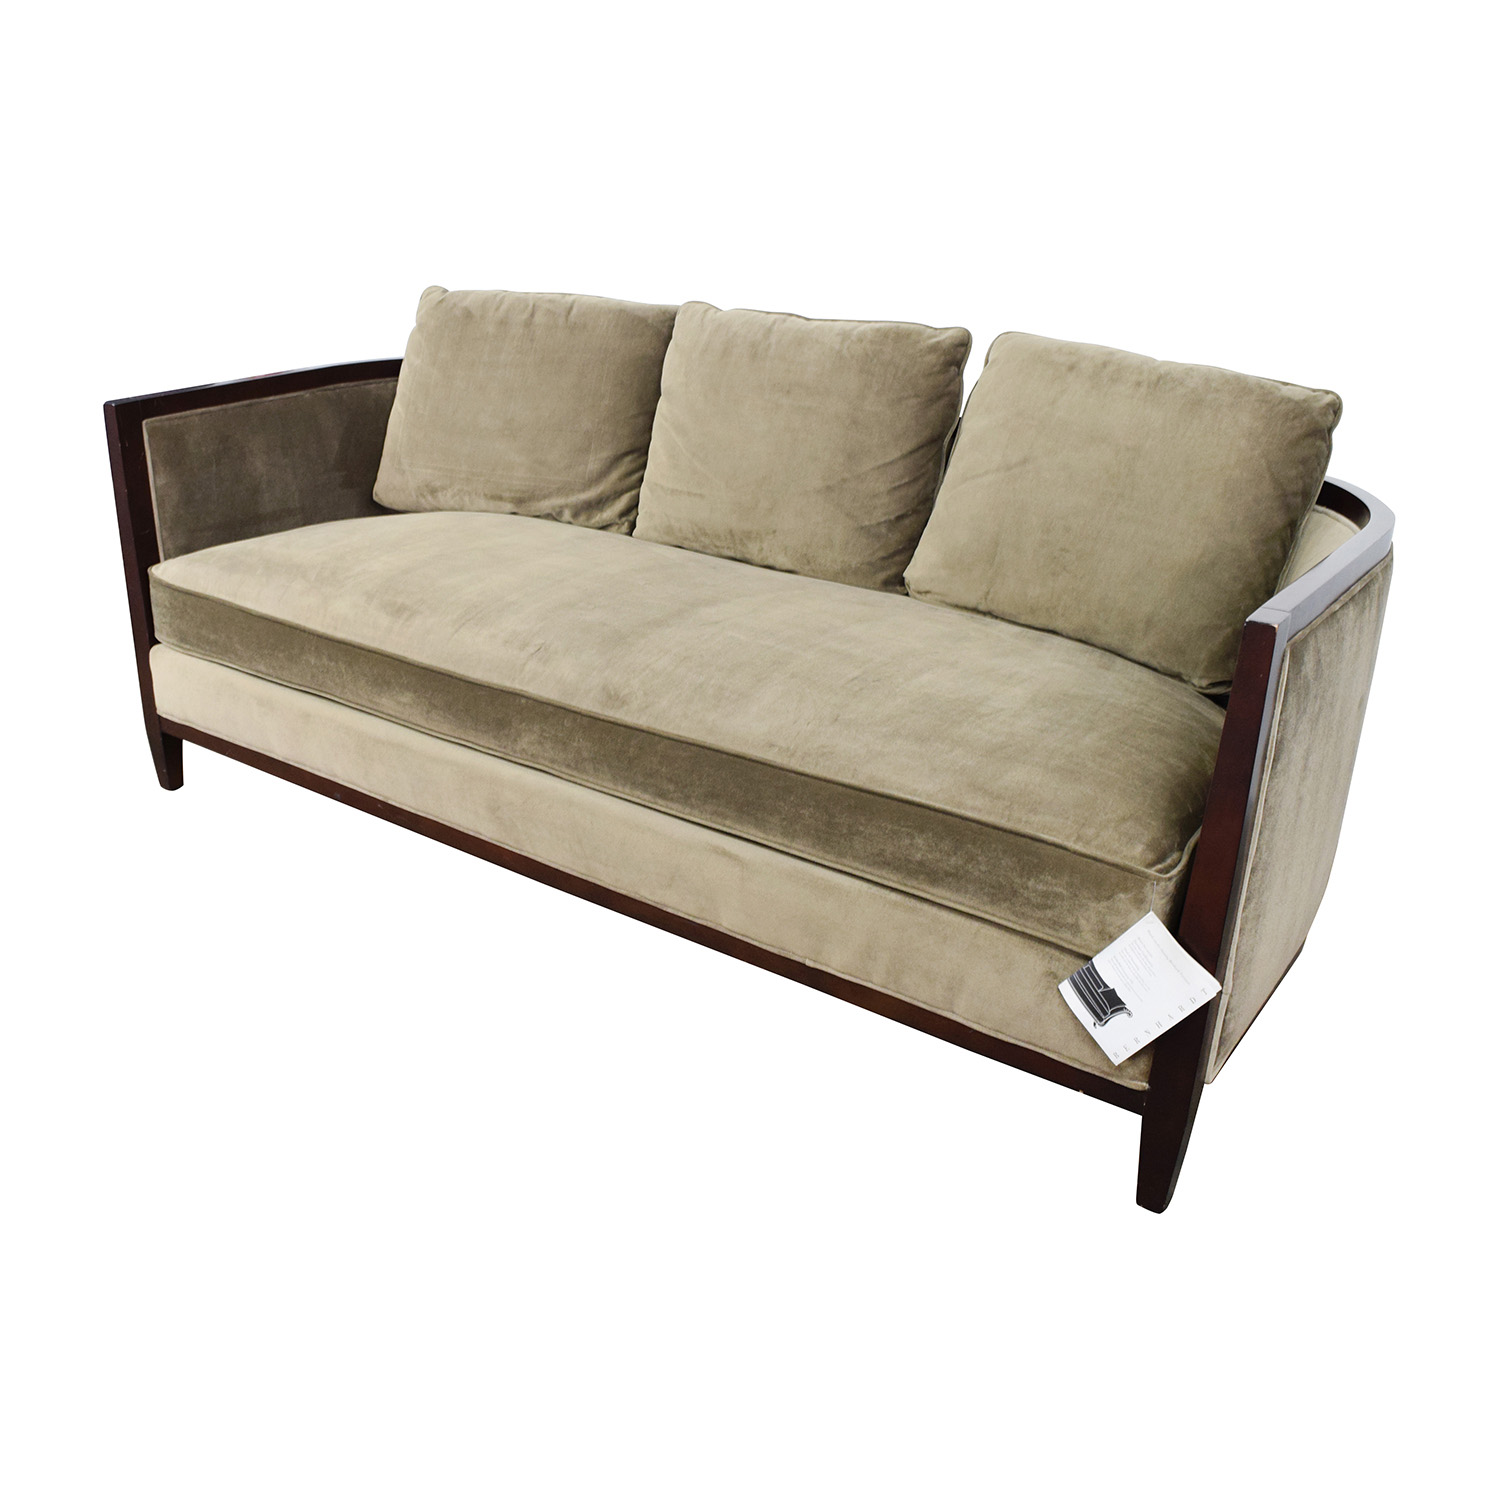 85 off bernhardt bernhardt tan single cushion sofa sofas for Bernhardt furniture